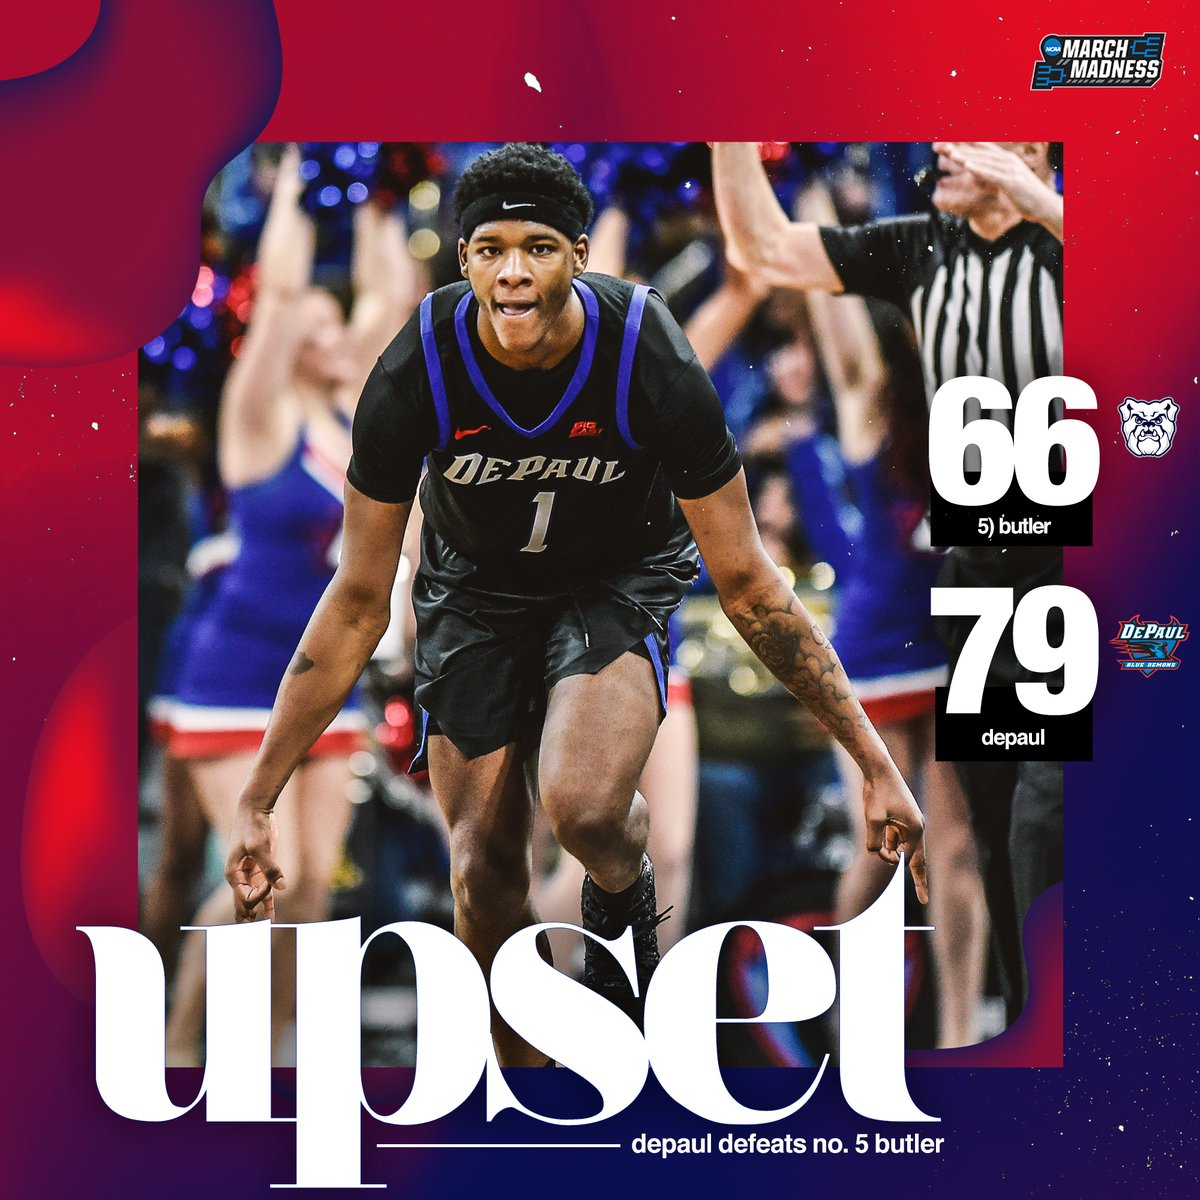 DOWN GOES NO. 5 BUTLER!   DePaul upsets the Bulldogs for their first win in the Big East!  <br>http://pic.twitter.com/7ELiHRalby